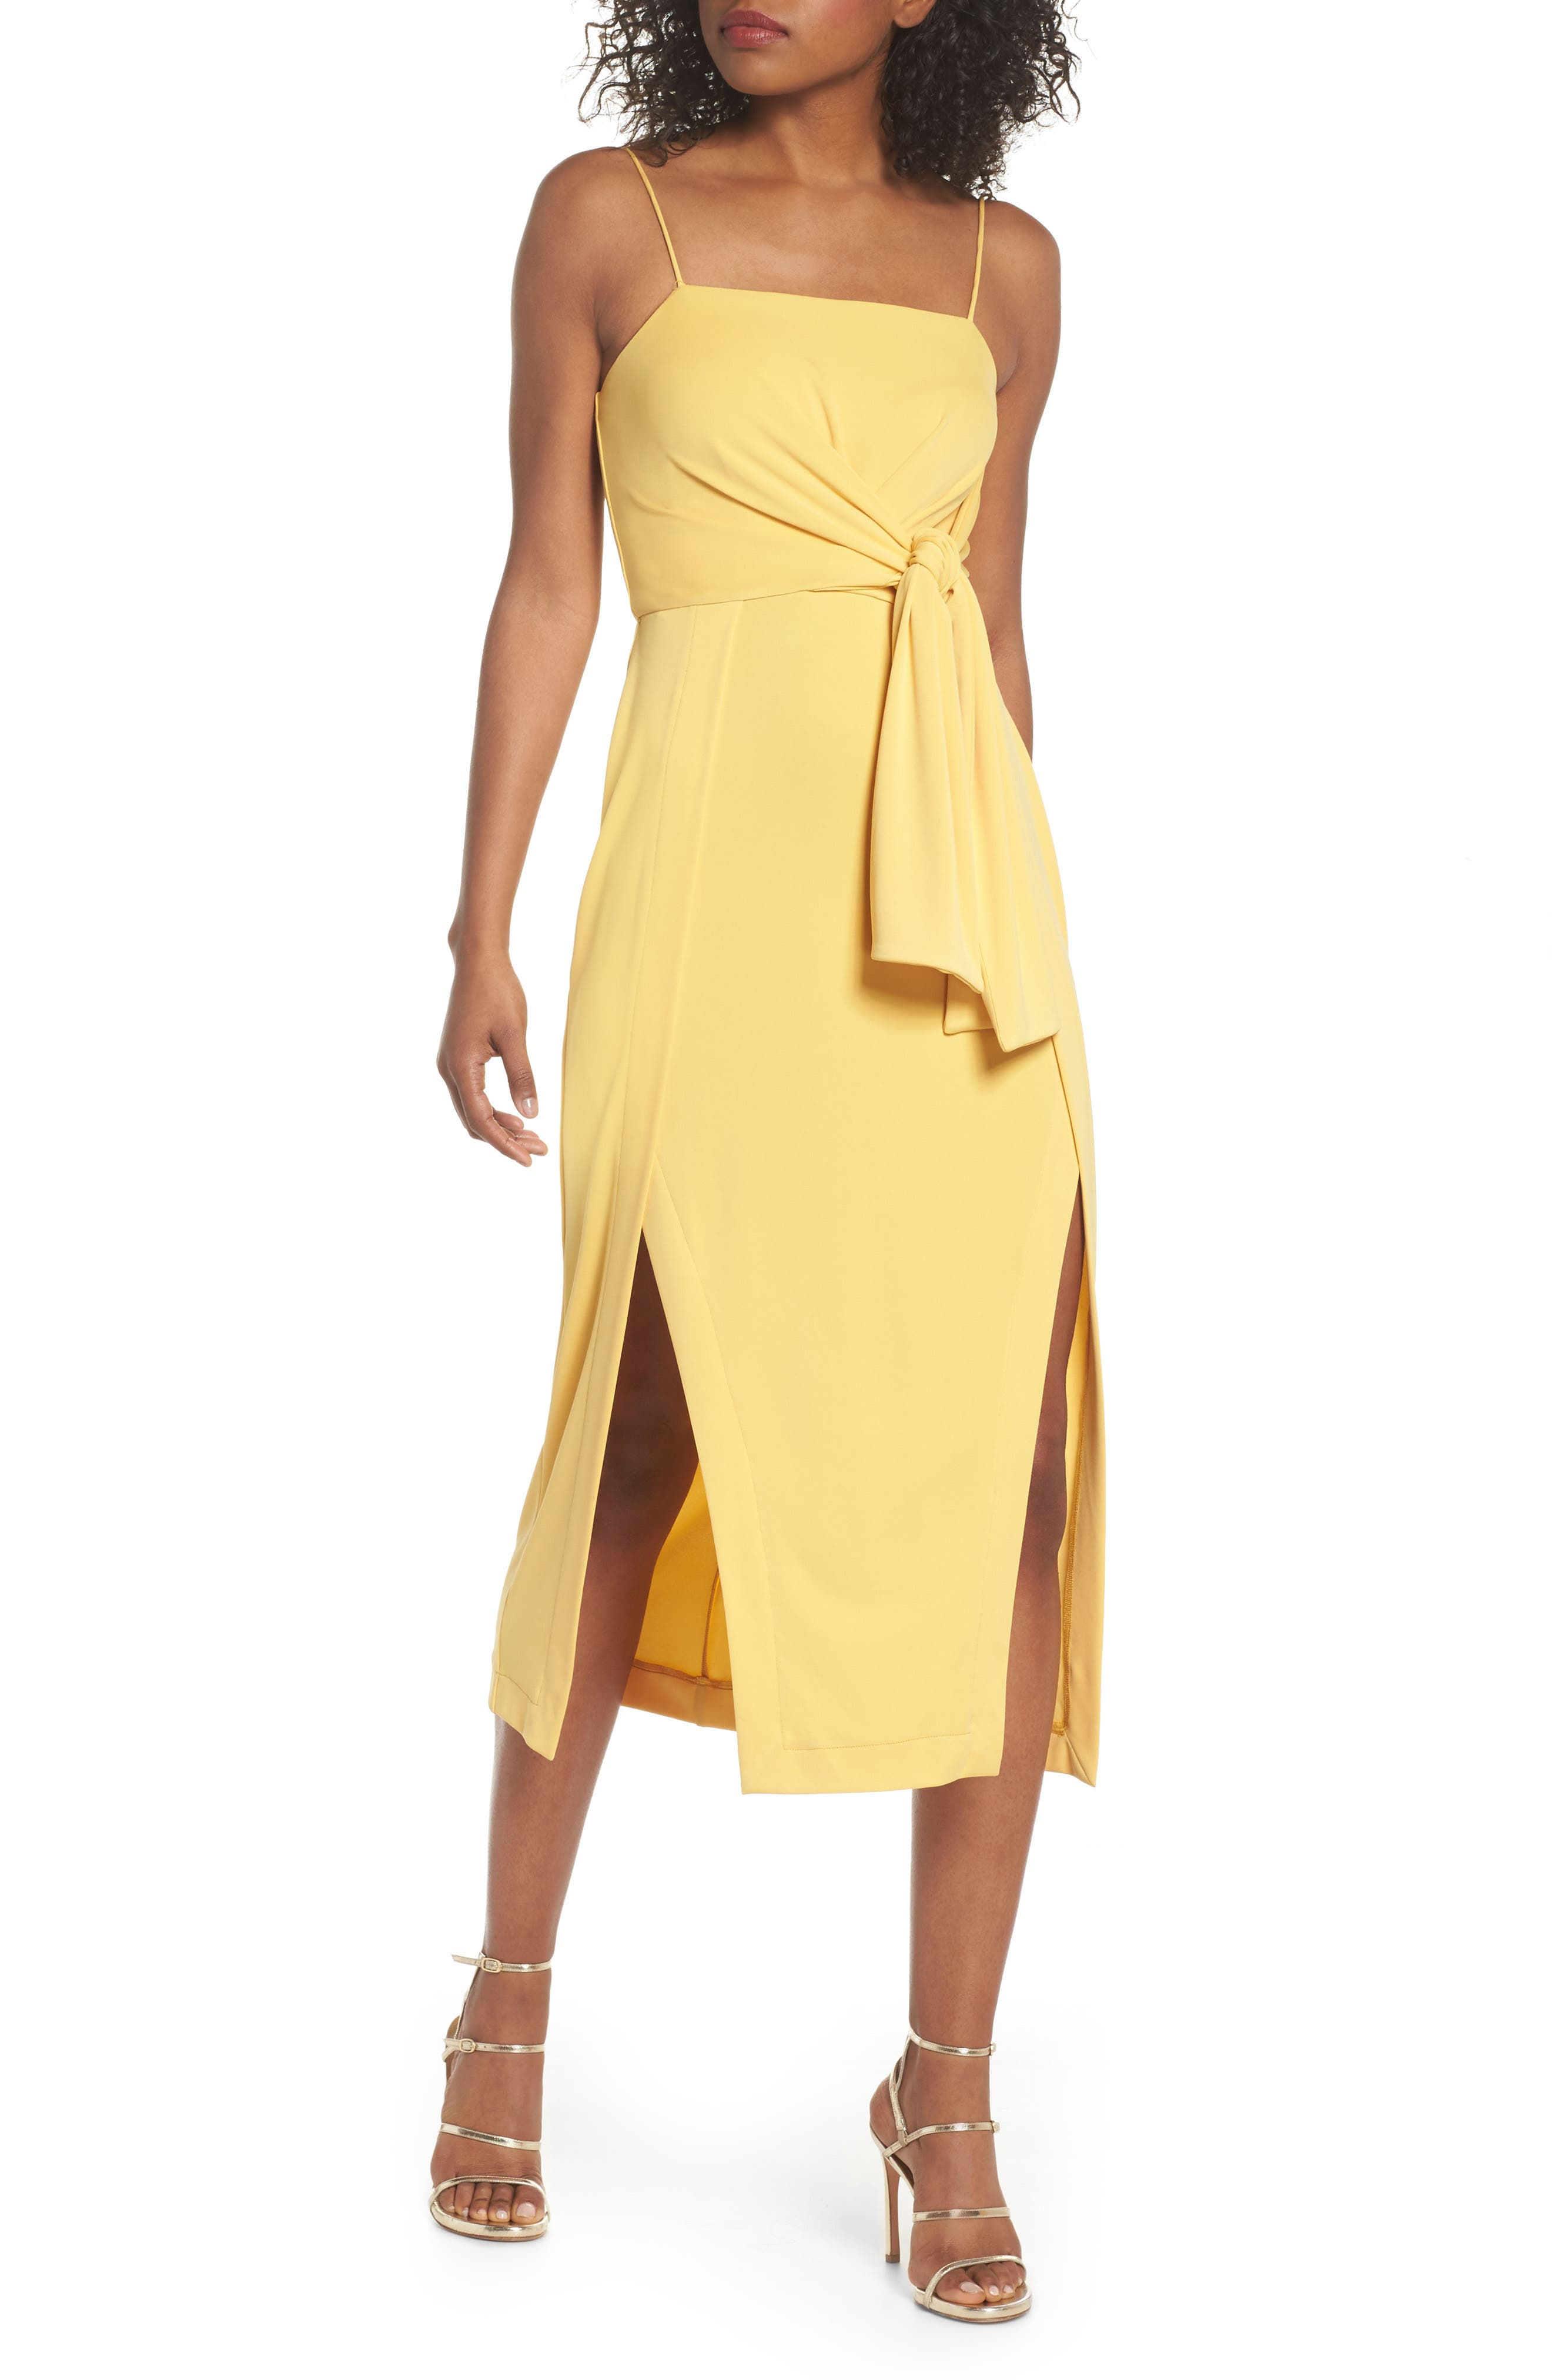 Recollect Slinky Side Tie Midi Dress,                         Main,                         color, Honey